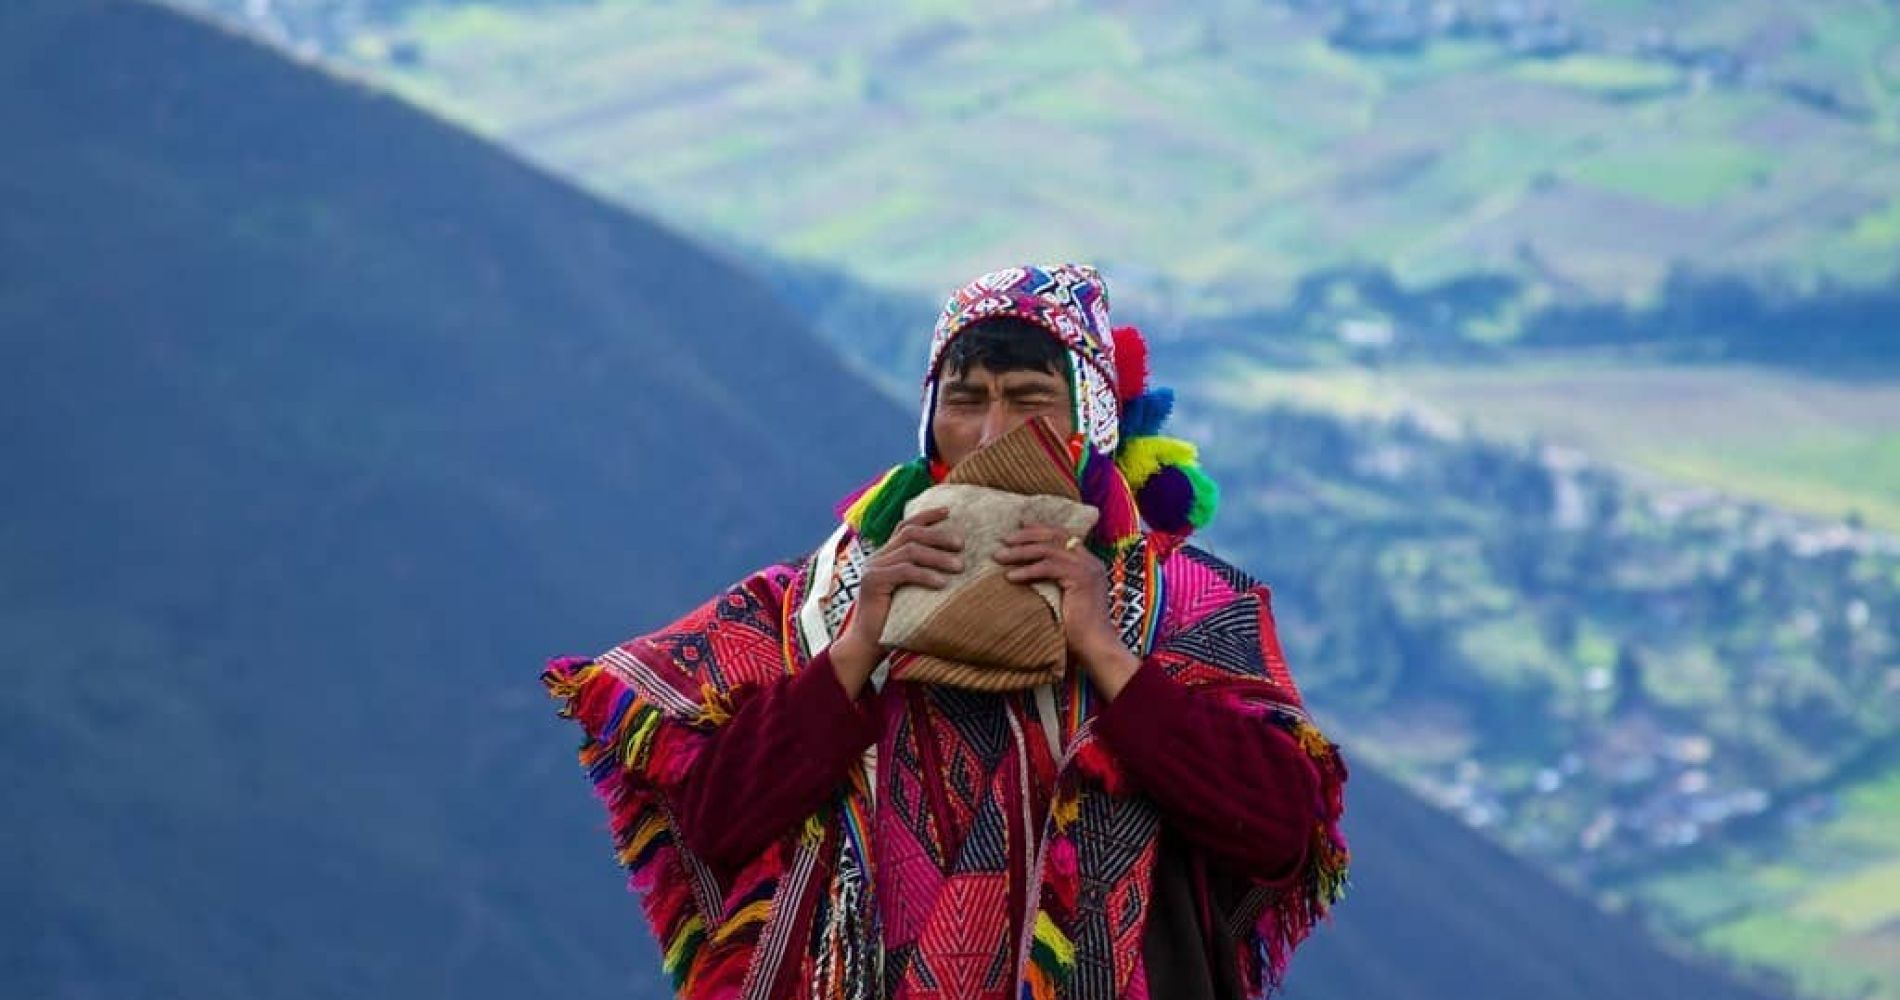 Sacred Valley of Incas Full Day Experience in Peru